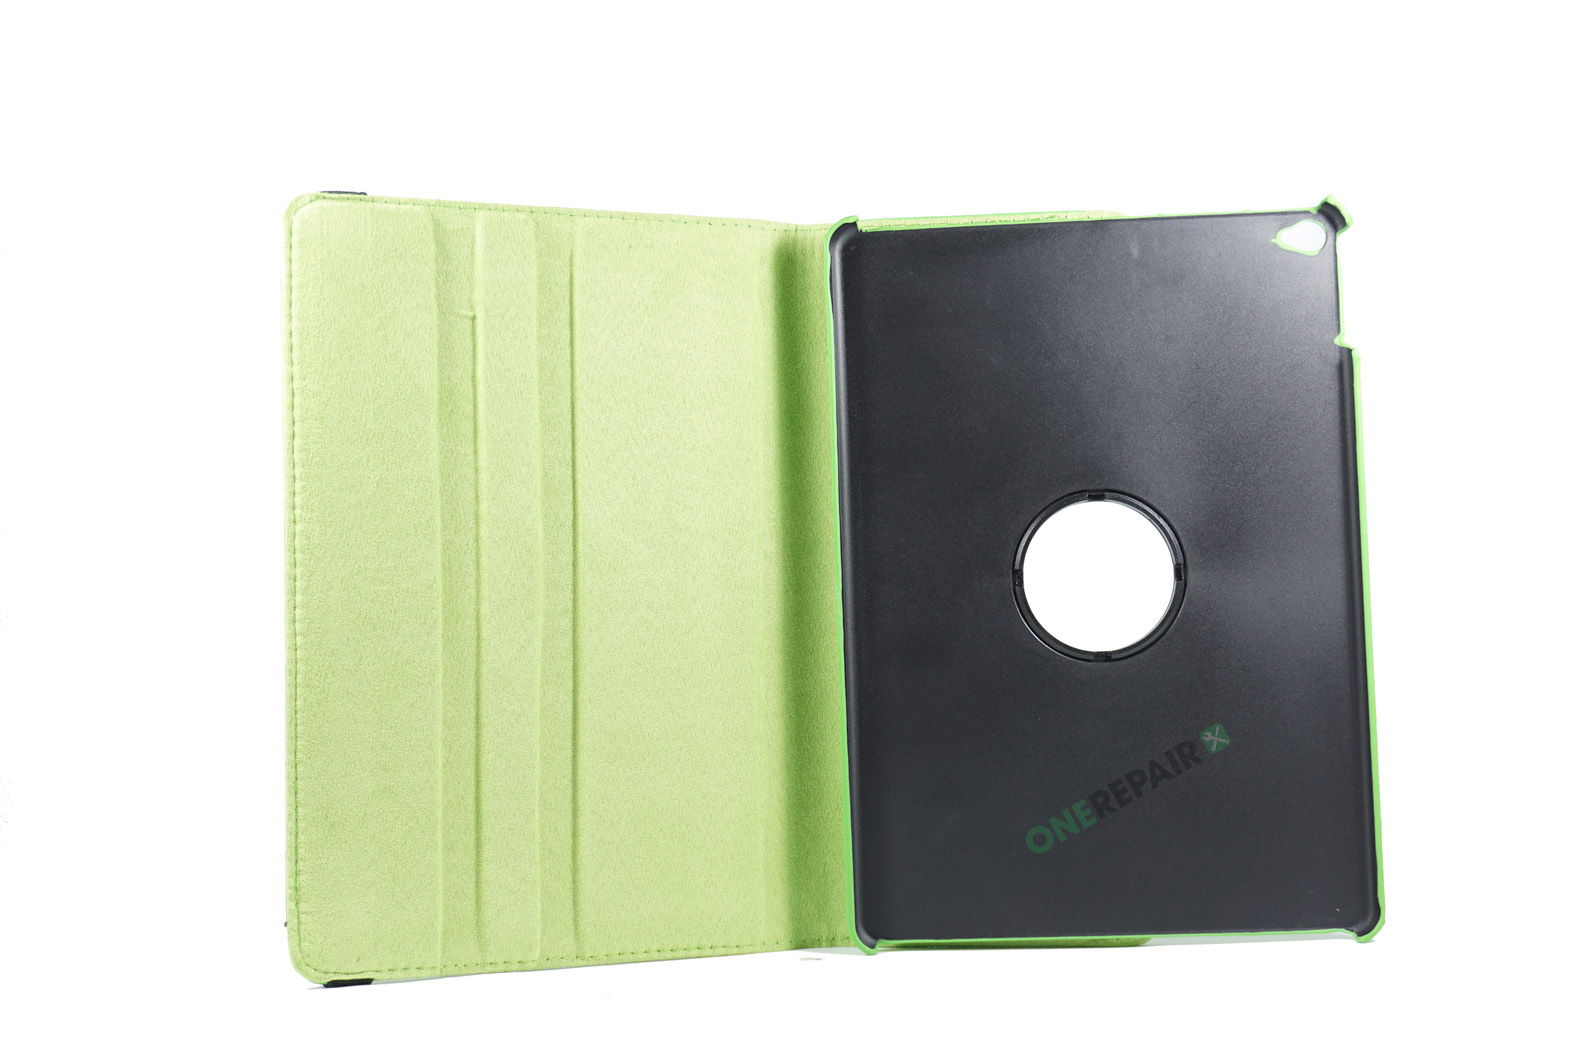 351018_iPad_Air_A1474_A1475_A1476_Flipcover_Cover_Groen_OneRepair_00003